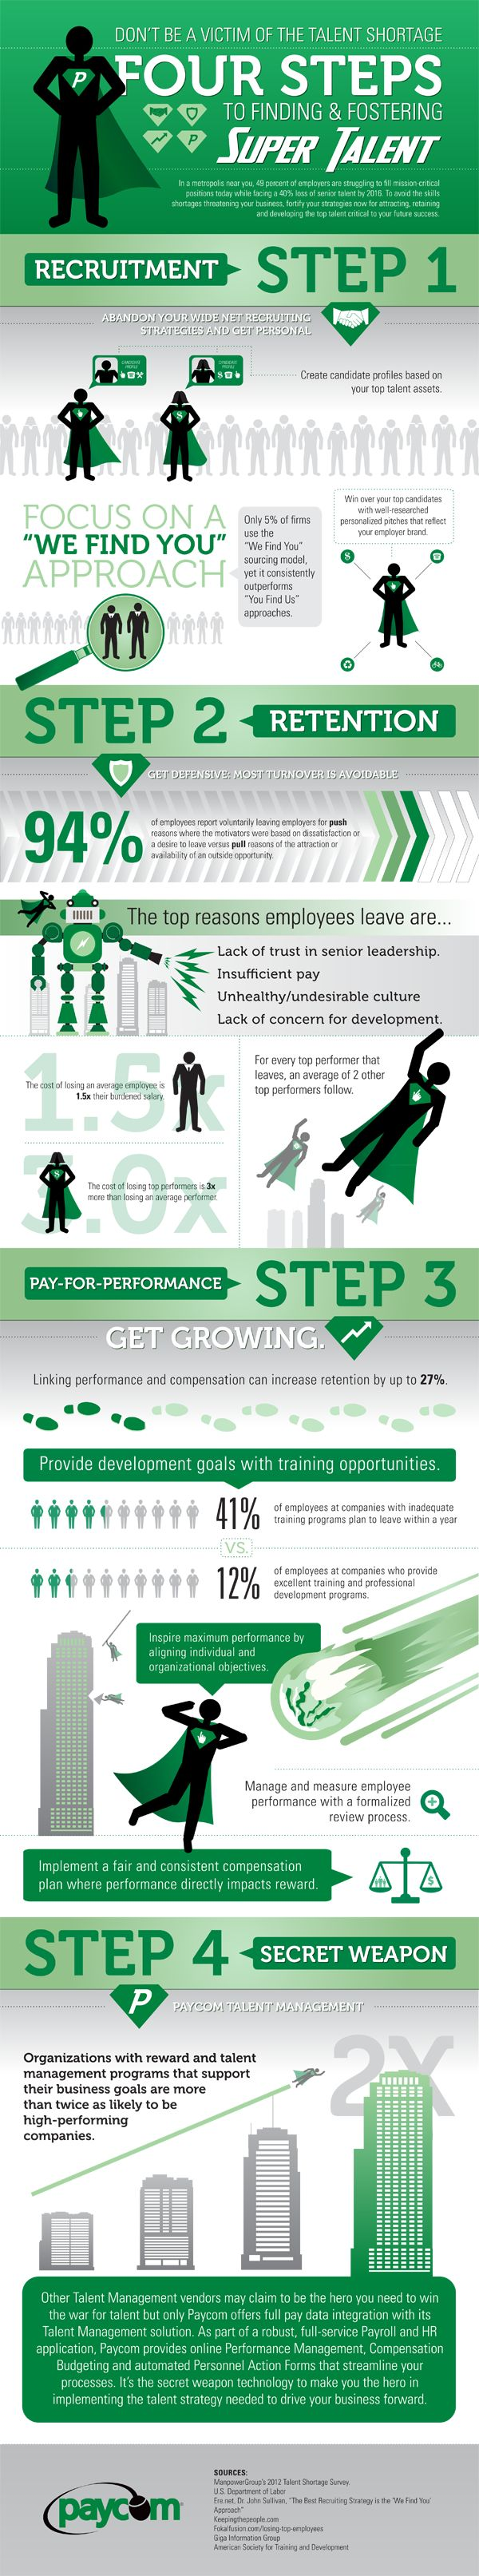 Store24 A Managing Employee Retention Case Study Help - Case Solution & Analysis